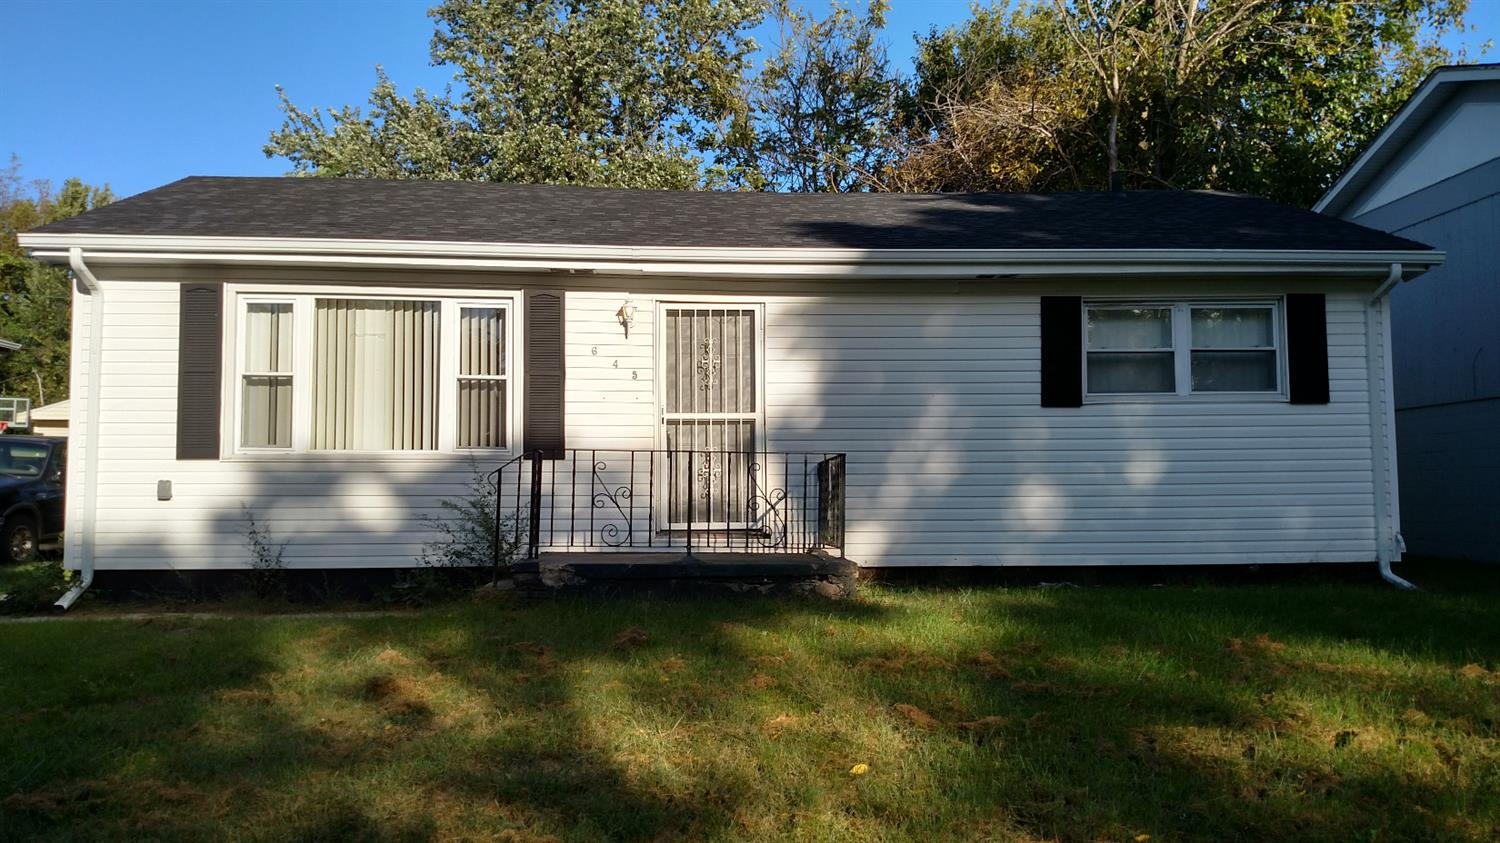 Ranch/1 Sty/Bungalow, Single Family Detach - Gary, IN (photo 1)